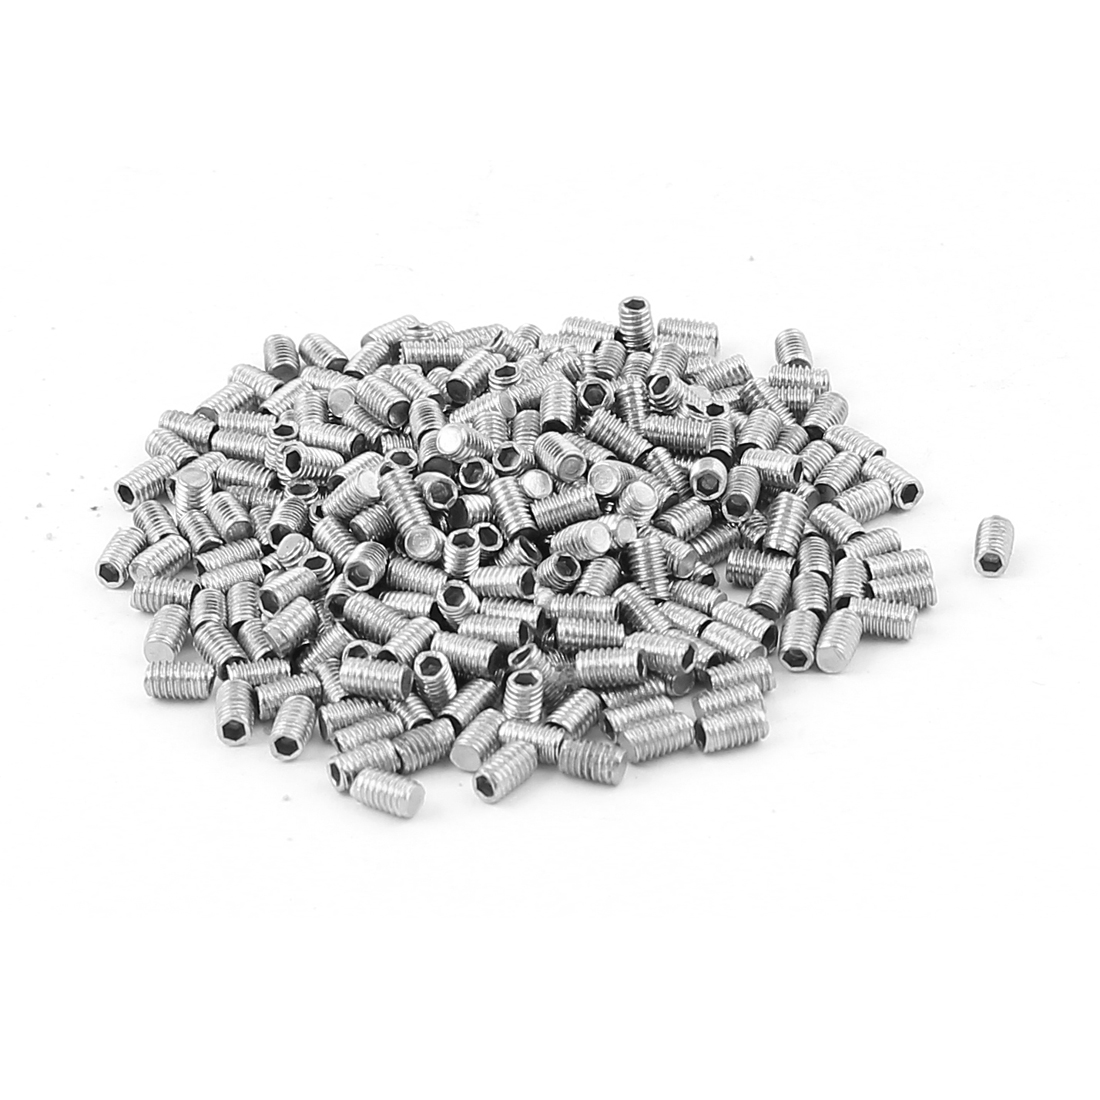 300pcs Stainless Steel M3 Thread Flat Point Grub Screws Fasteners